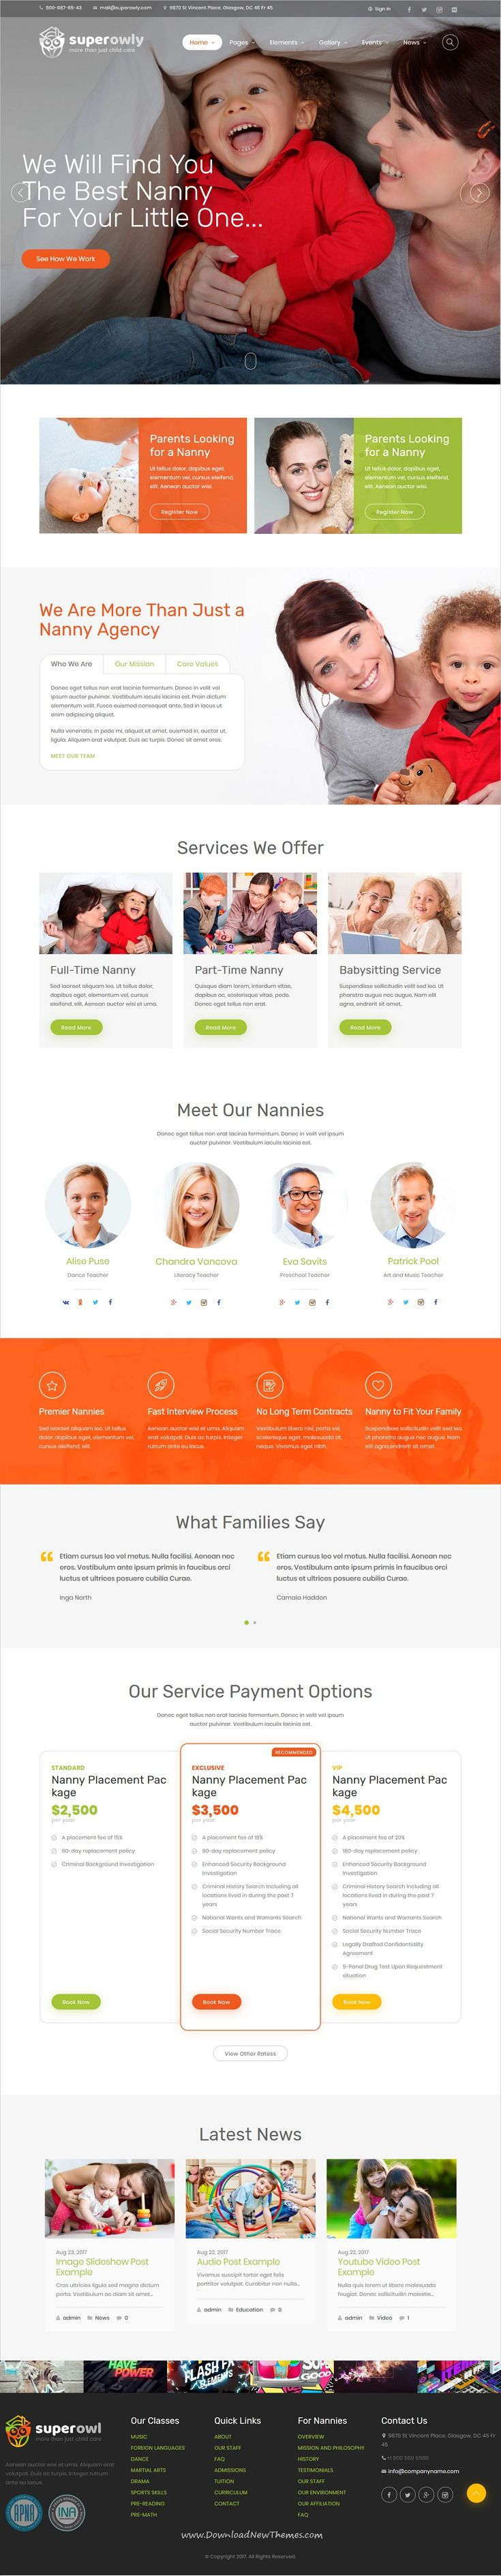 SuperOwly is clean and modern design 3in1 responsive WordPress theme for #kindergarten, #preschool, elementary school, #childcare center or #nanny agencies website to live preview & download click on Visit